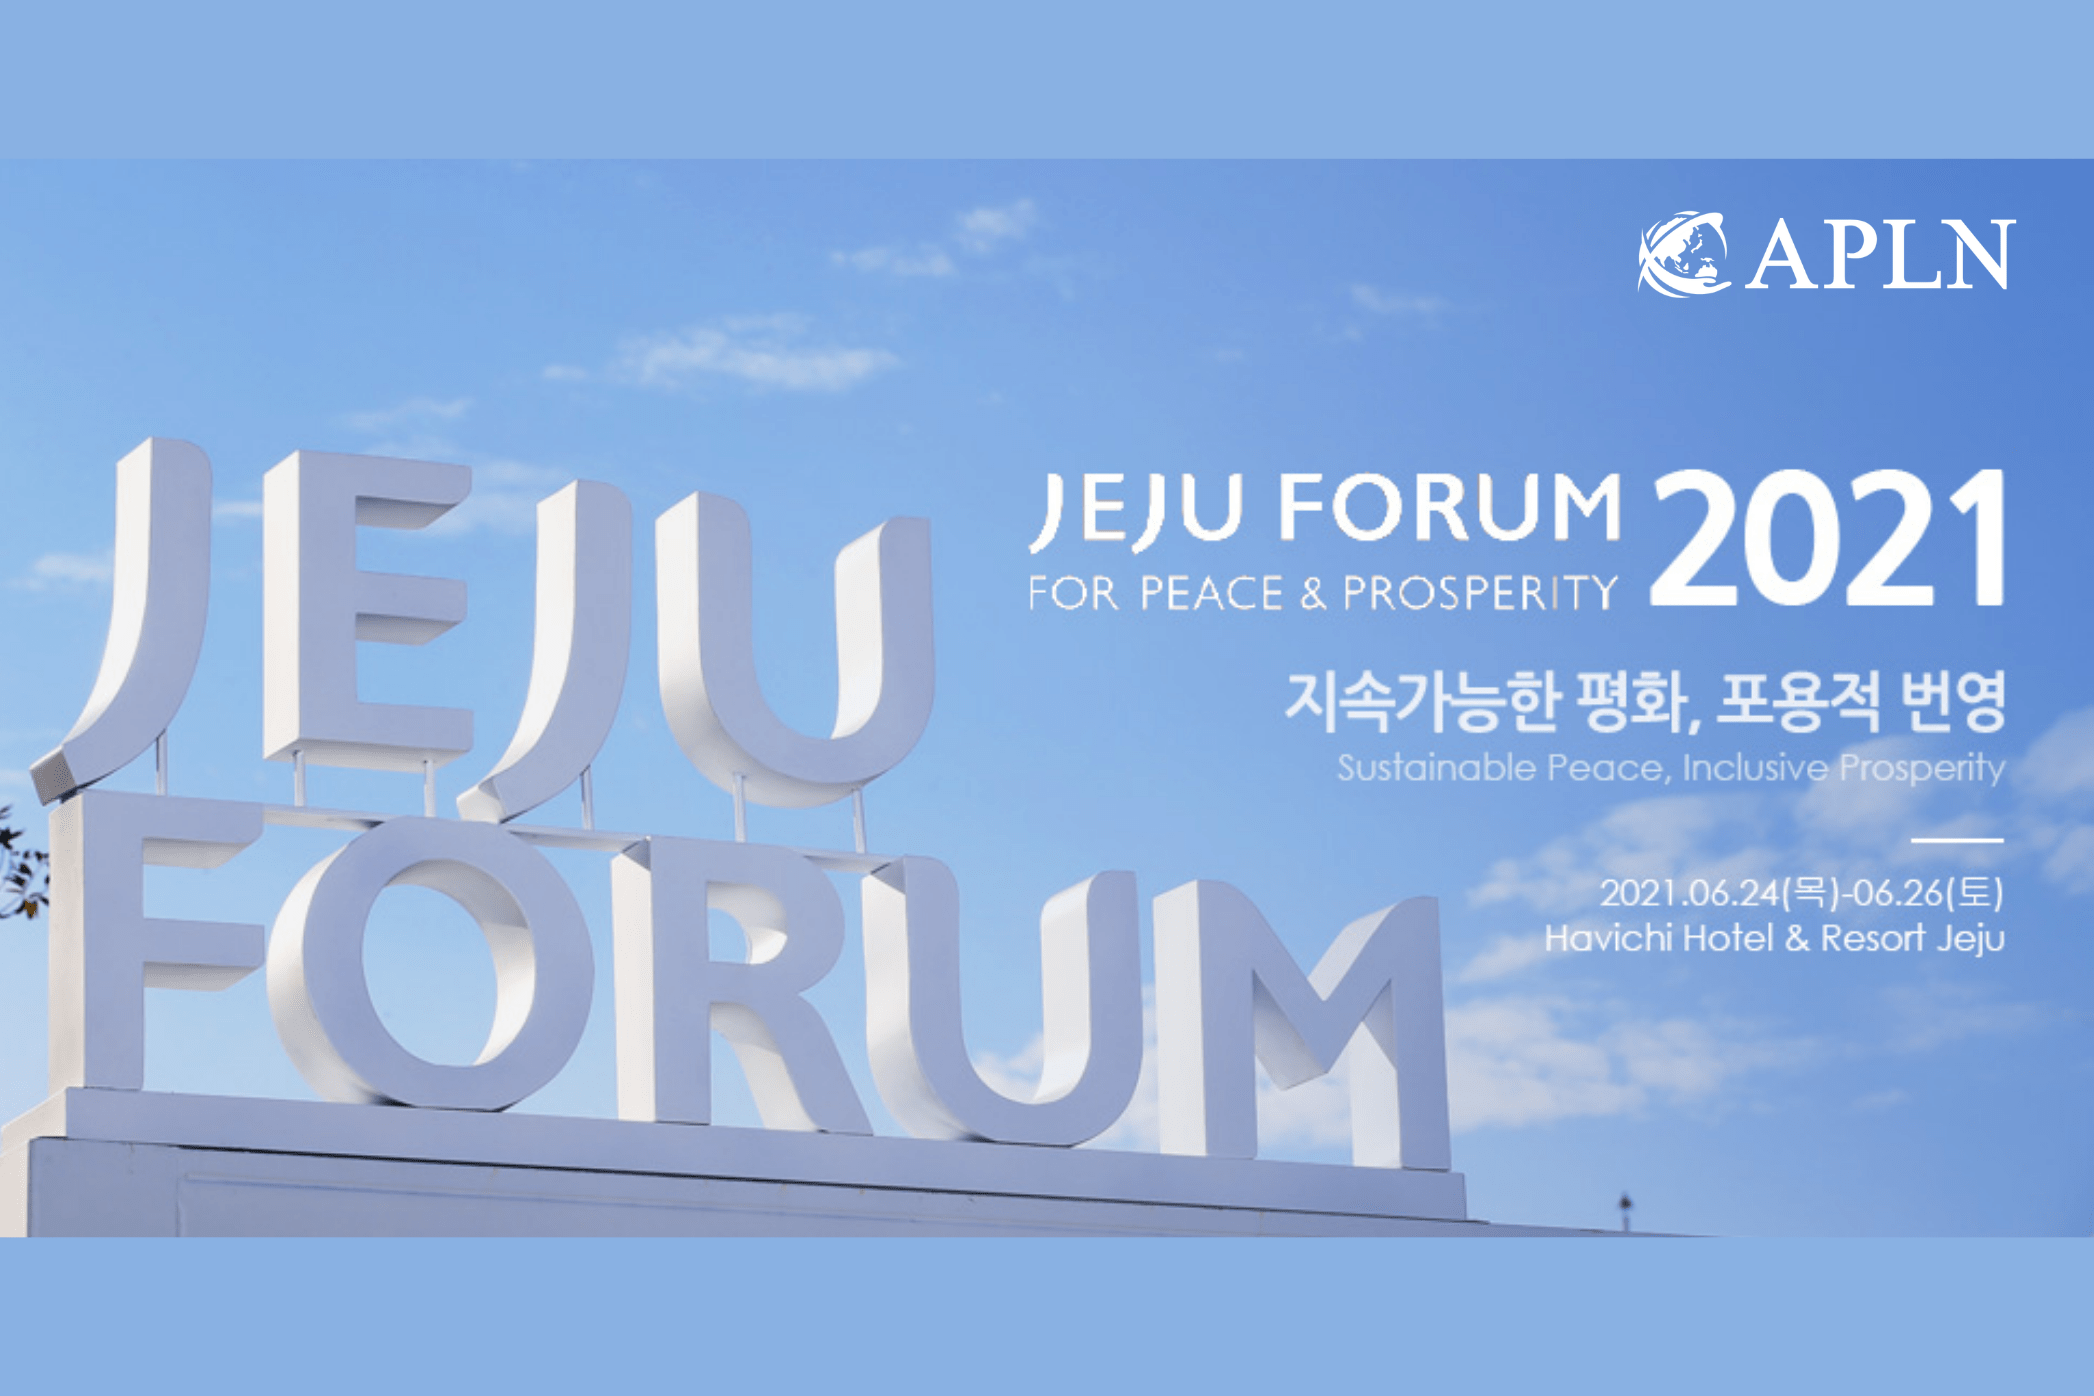 APLN at Jeju Forum 2021: Sustainable Peace and Inclusive Prosperity